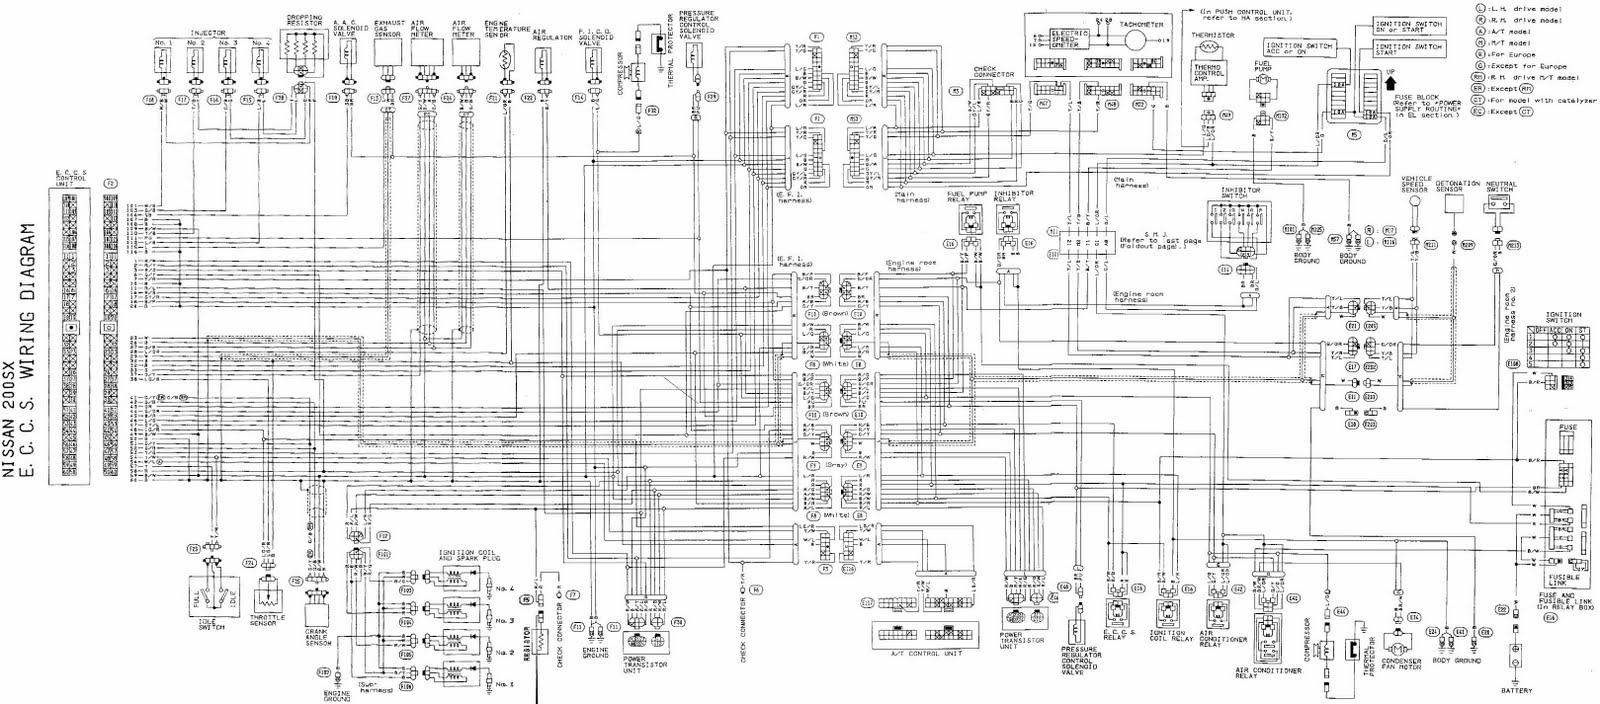 wiring diagram for 1996 nissan 200sx ciencia y tecnolog a diagramas de circuito de control motor club car golf cart wiring diagram for 1996 #7